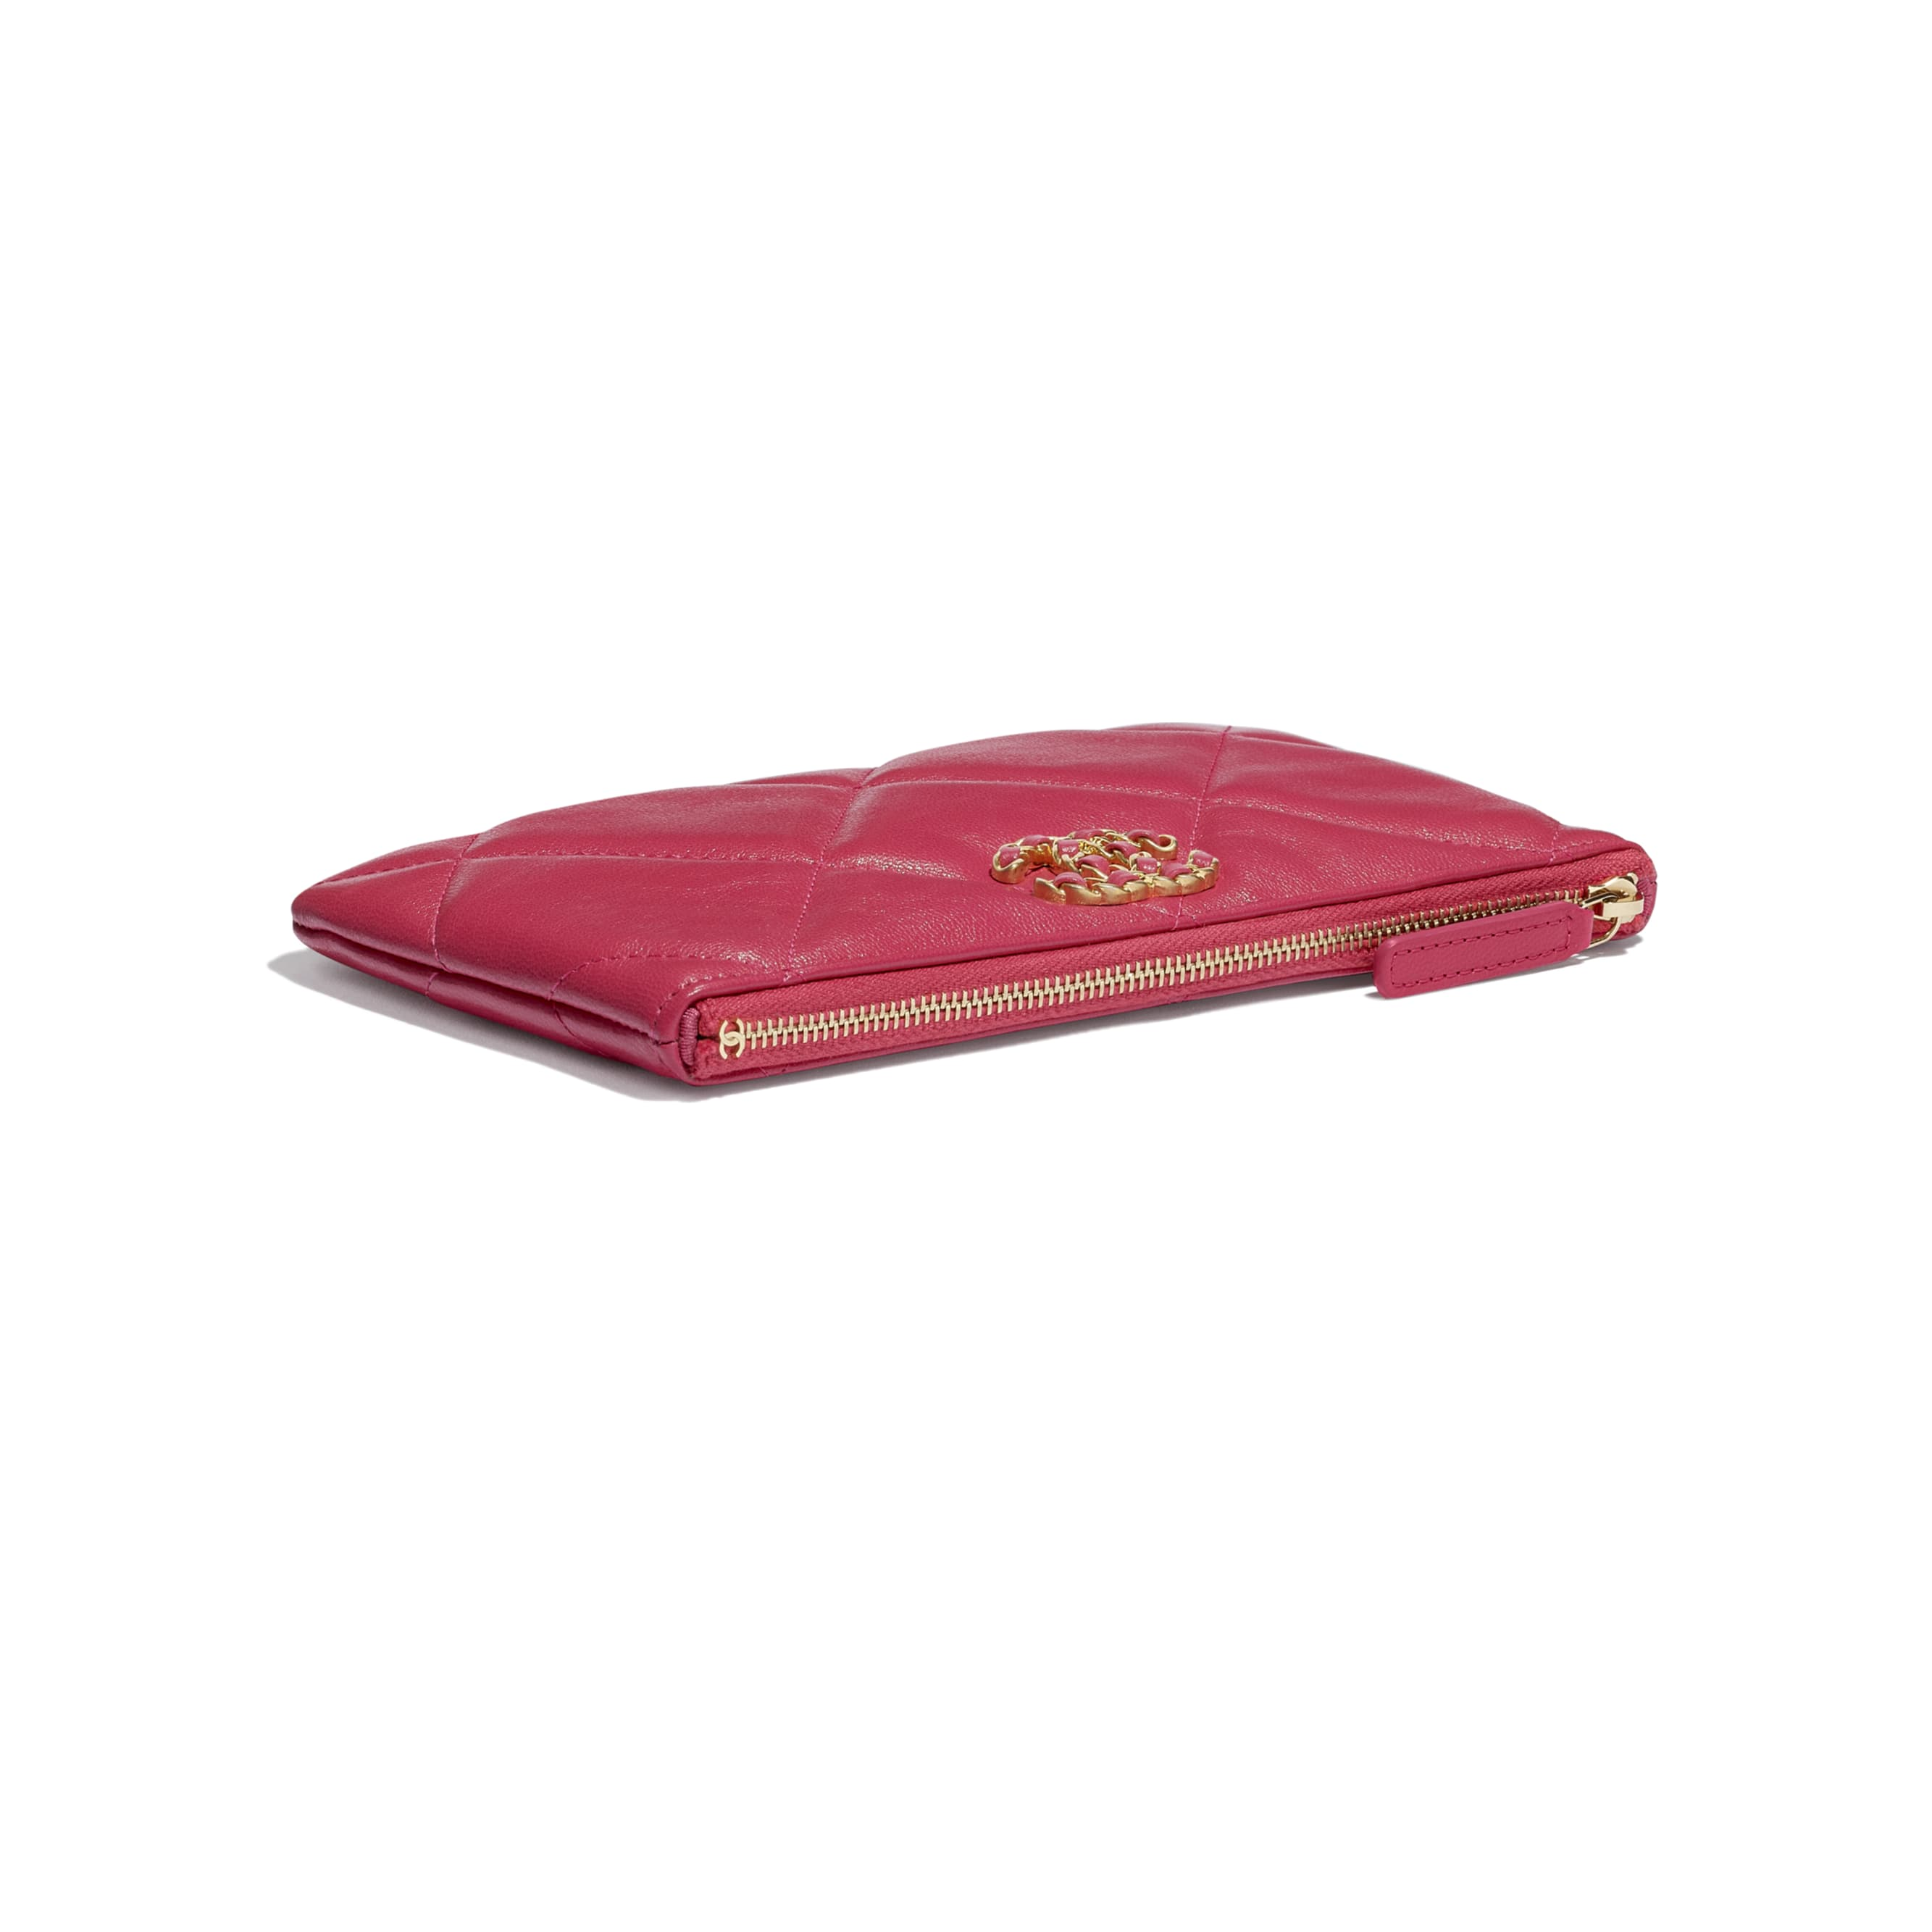 CHANEL 19 Small Pouch - Pink - Shiny Goatskin & Gold-Tone Metal - CHANEL - Extra view - see standard sized version